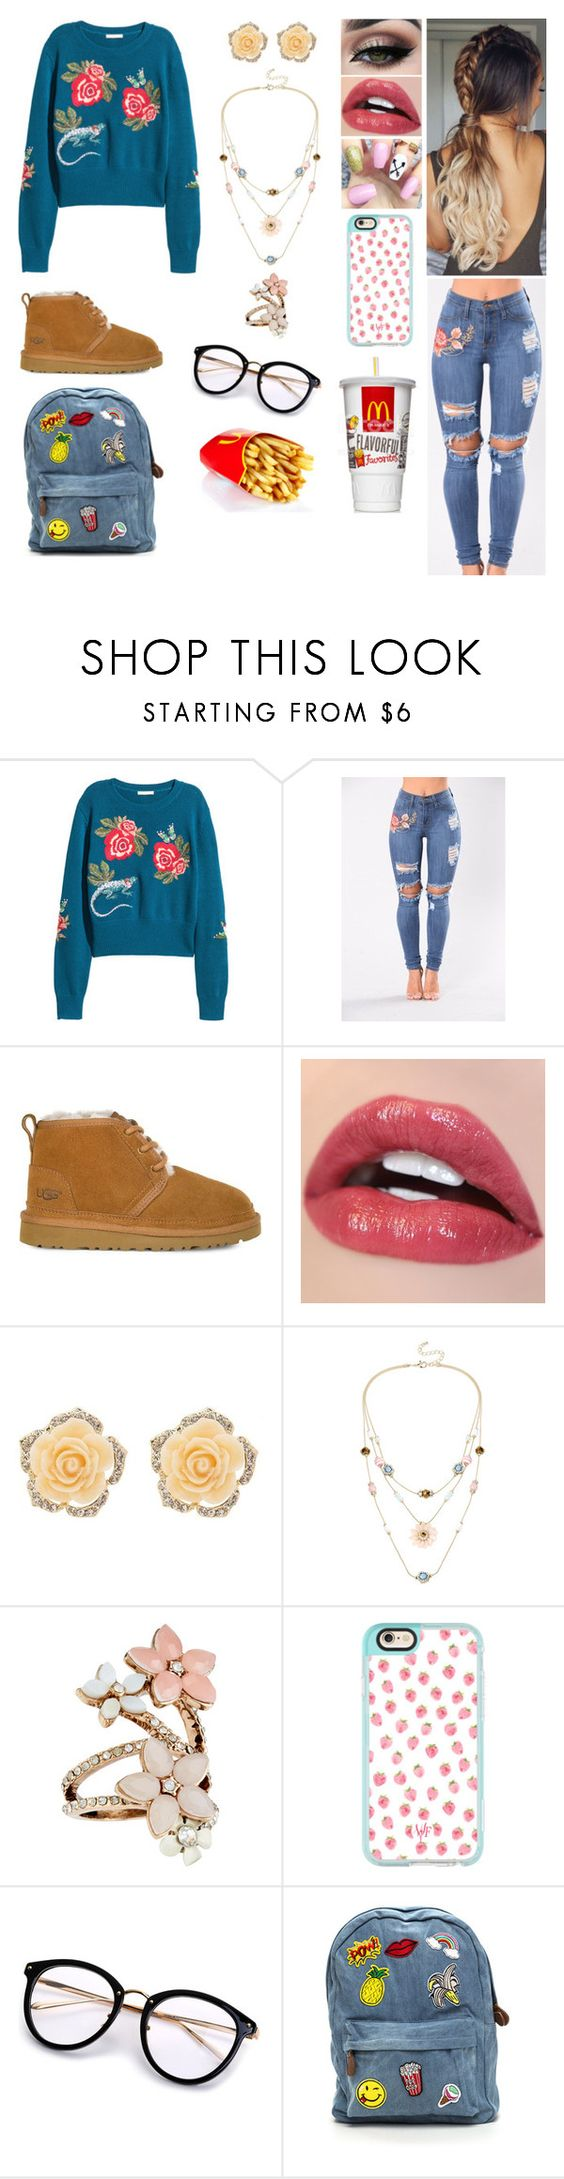 """Floral"" by divinemaboundou ❤ liked on Polyvore featuring UGG, Tiger Mist, Charlotte Russe, Mixit, Accessorize and Casetify"